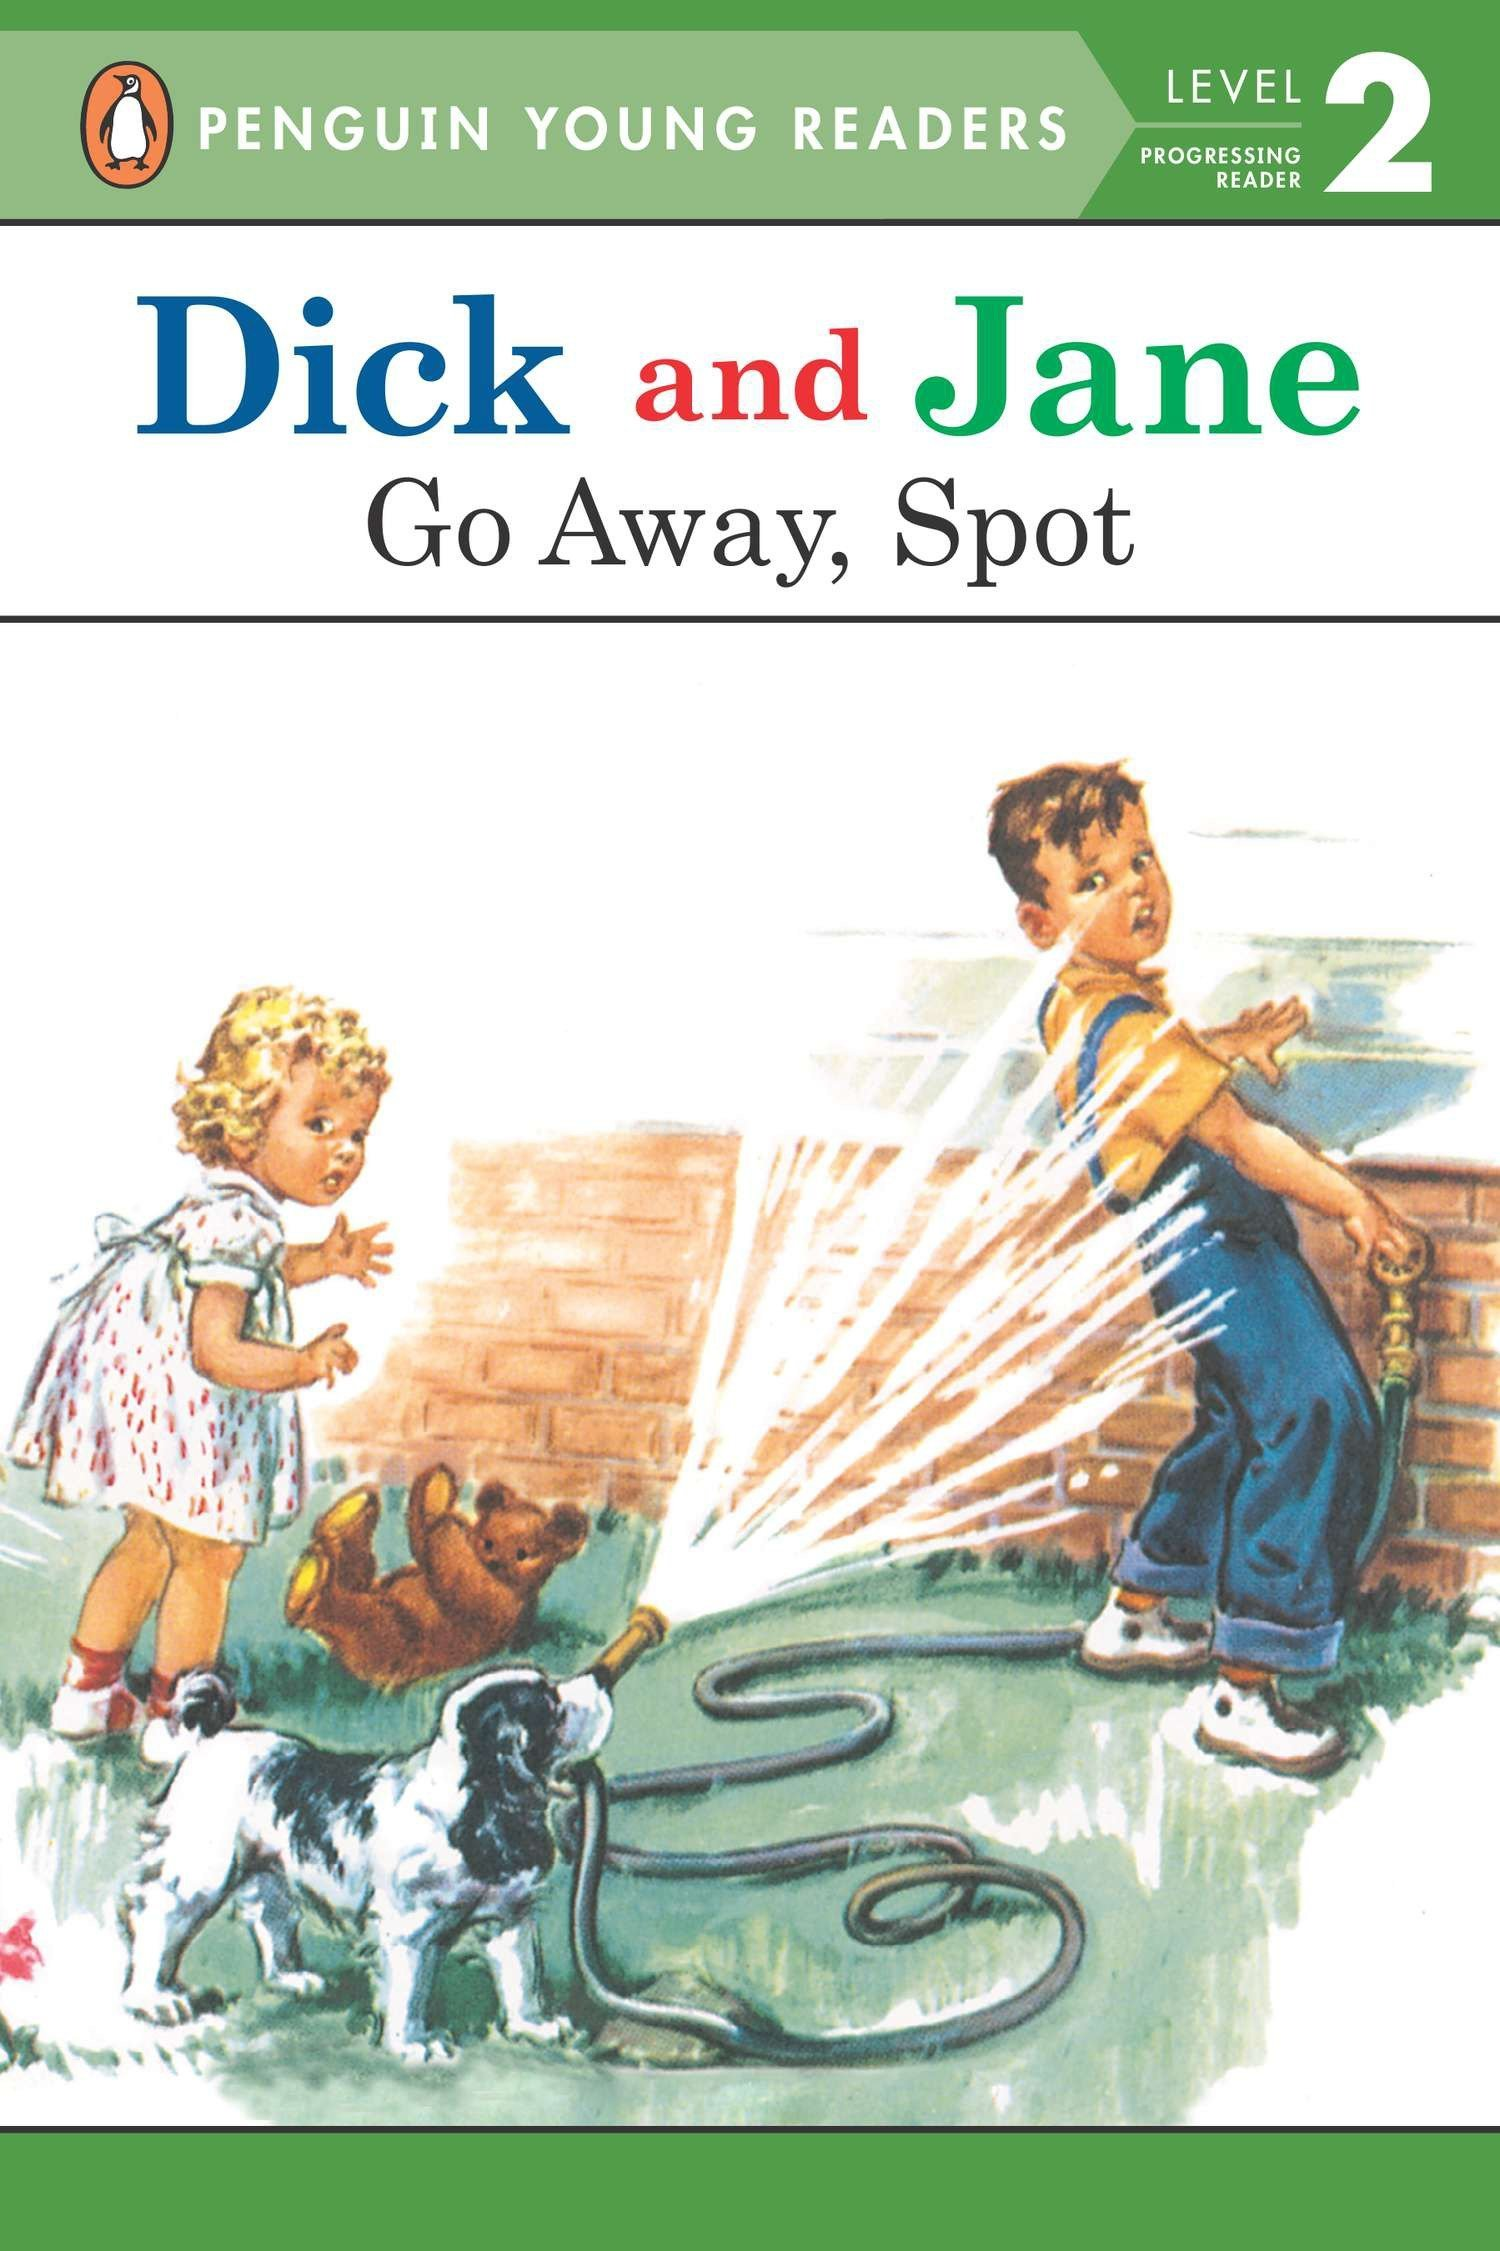 Go Away, Spot (Read with Dick and Jane) PDF